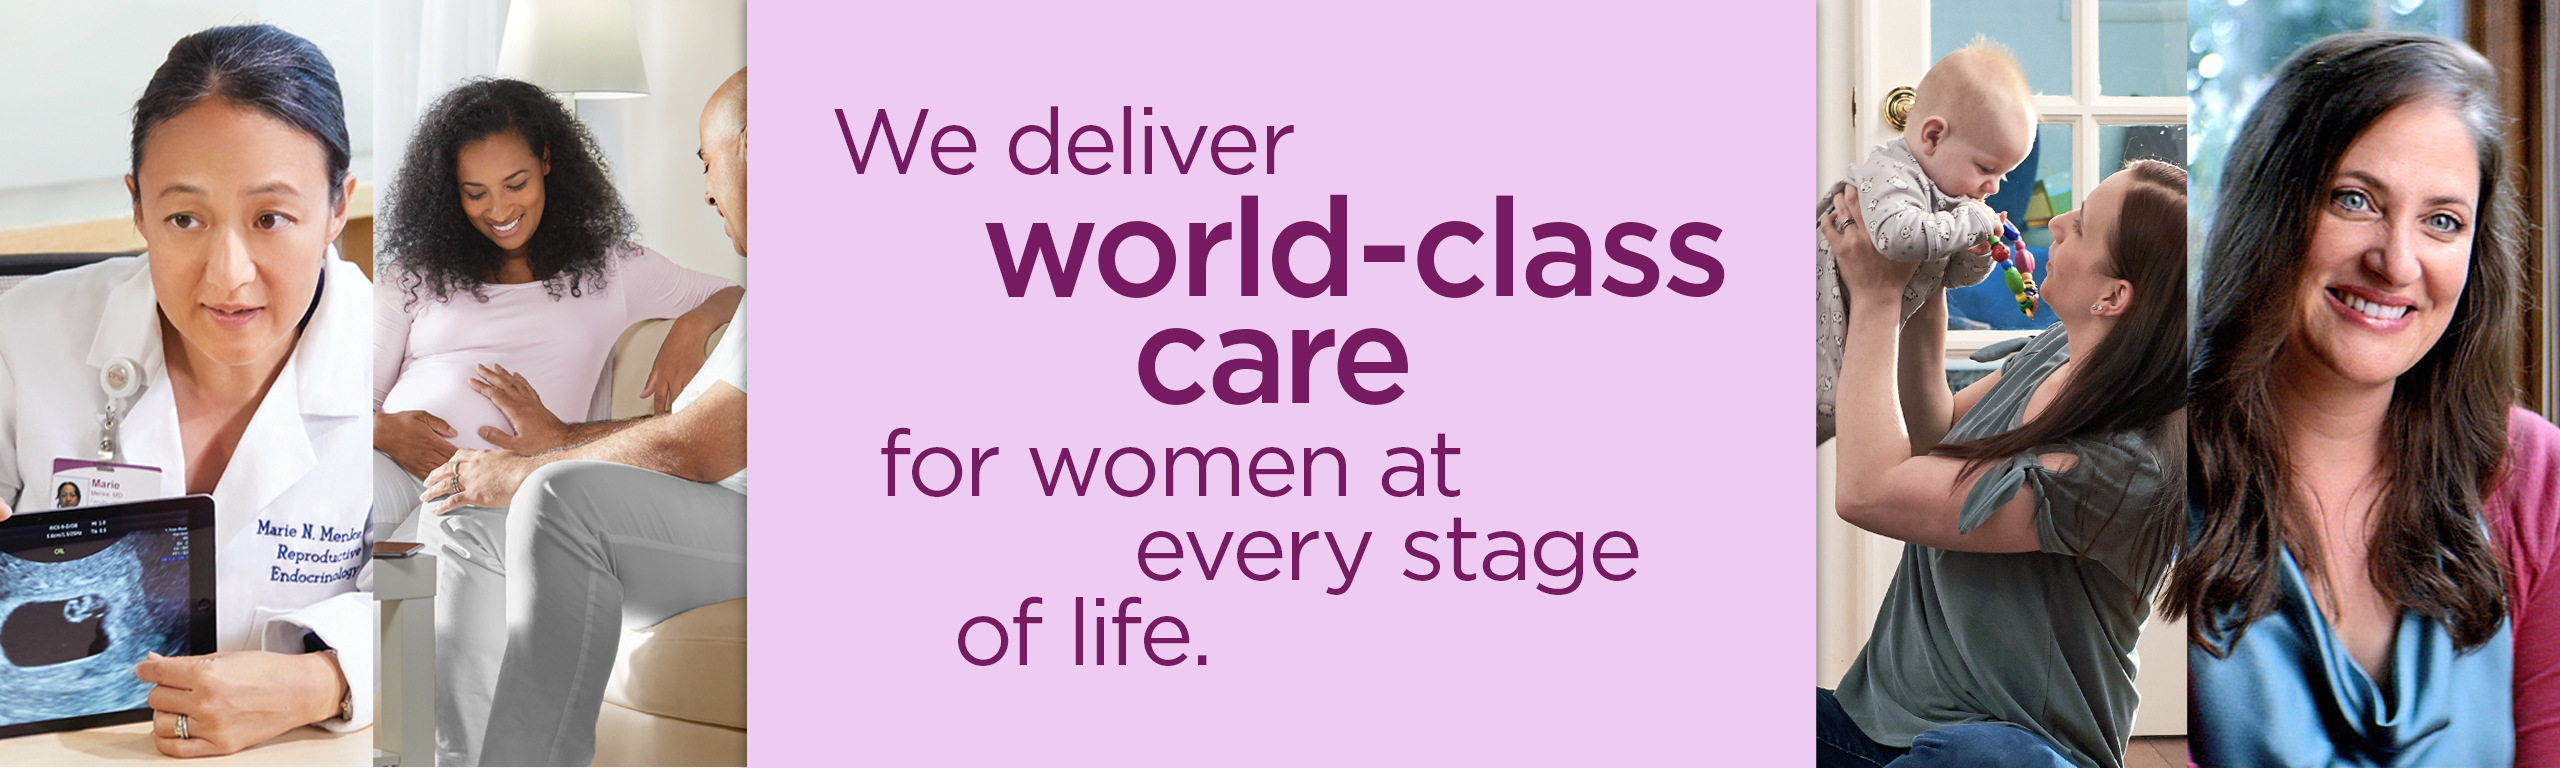 We deliver world-class care for women at every stage of life